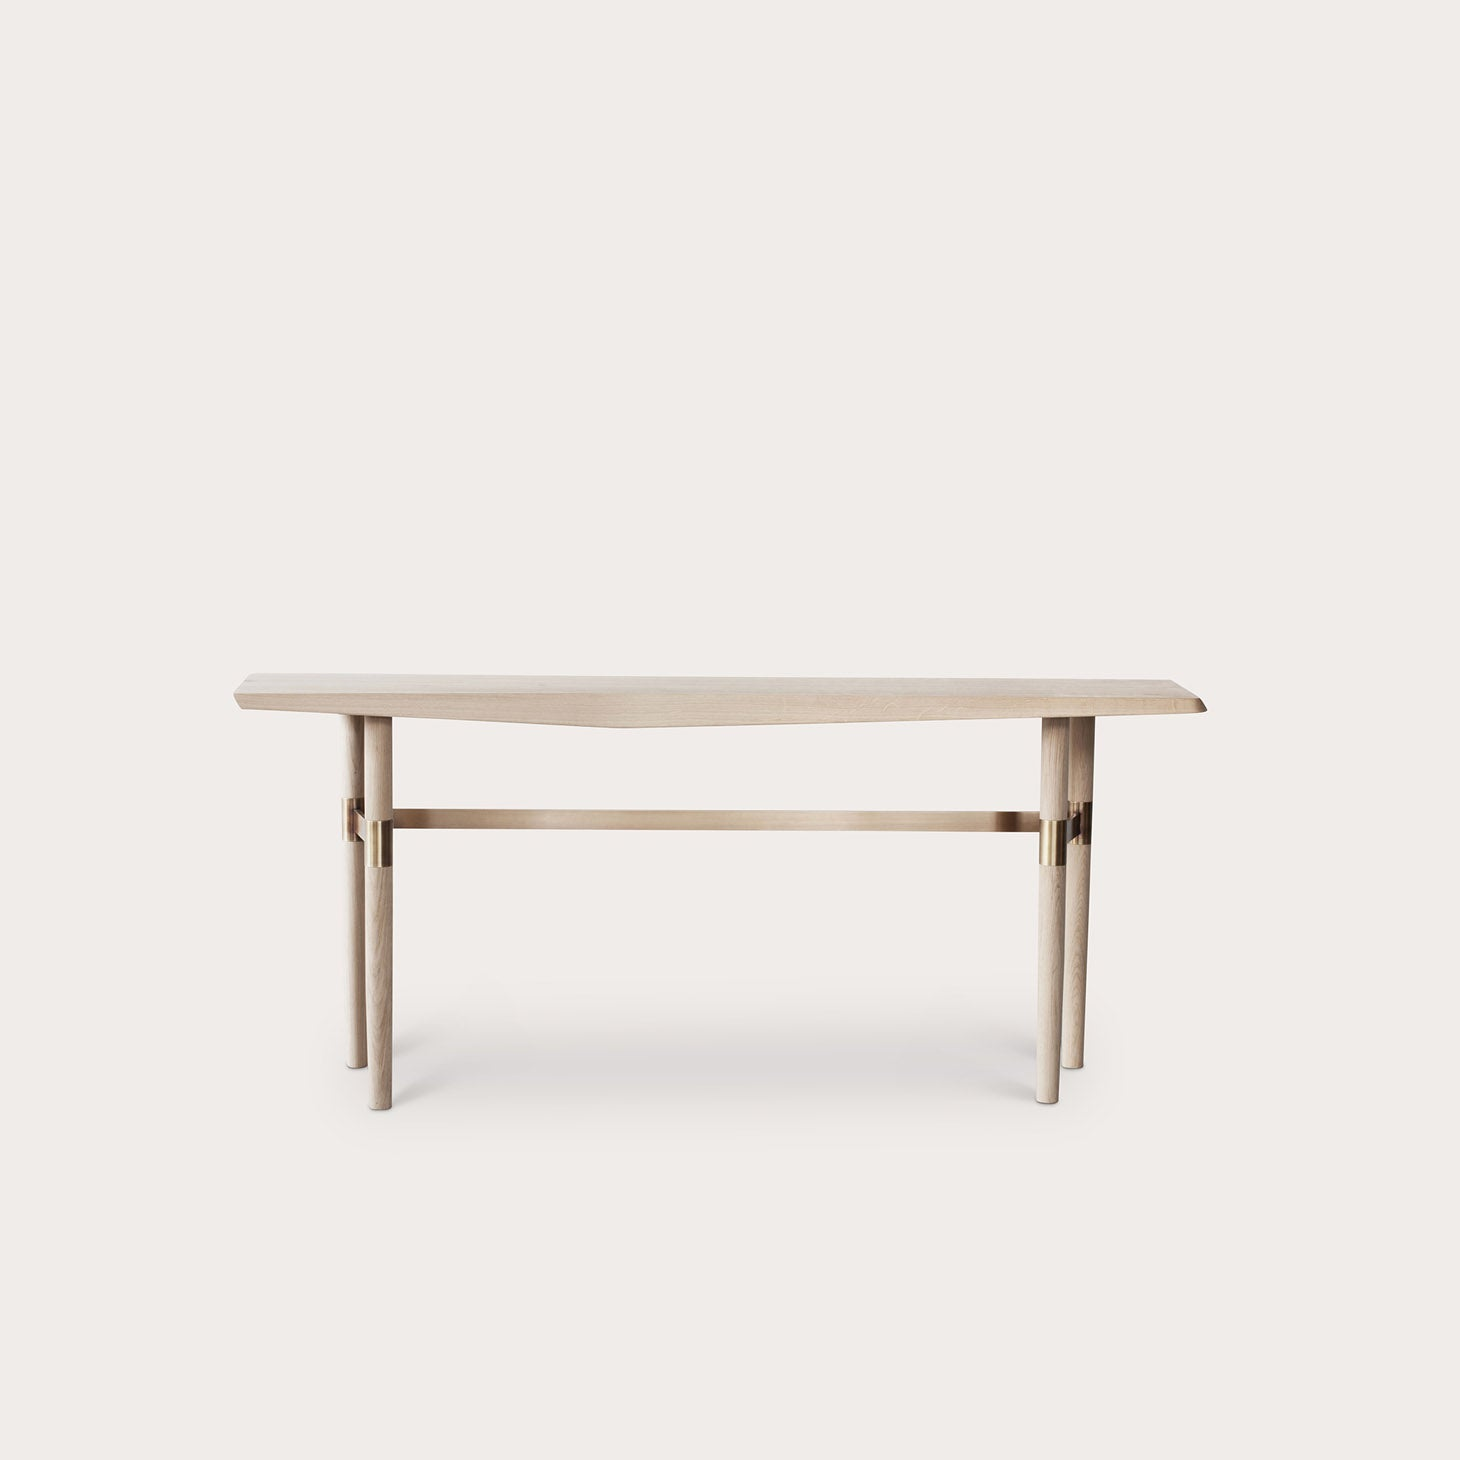 Darling Point Console Tables Yabu Pushelberg Designer Furniture Sku: 416-230-10109